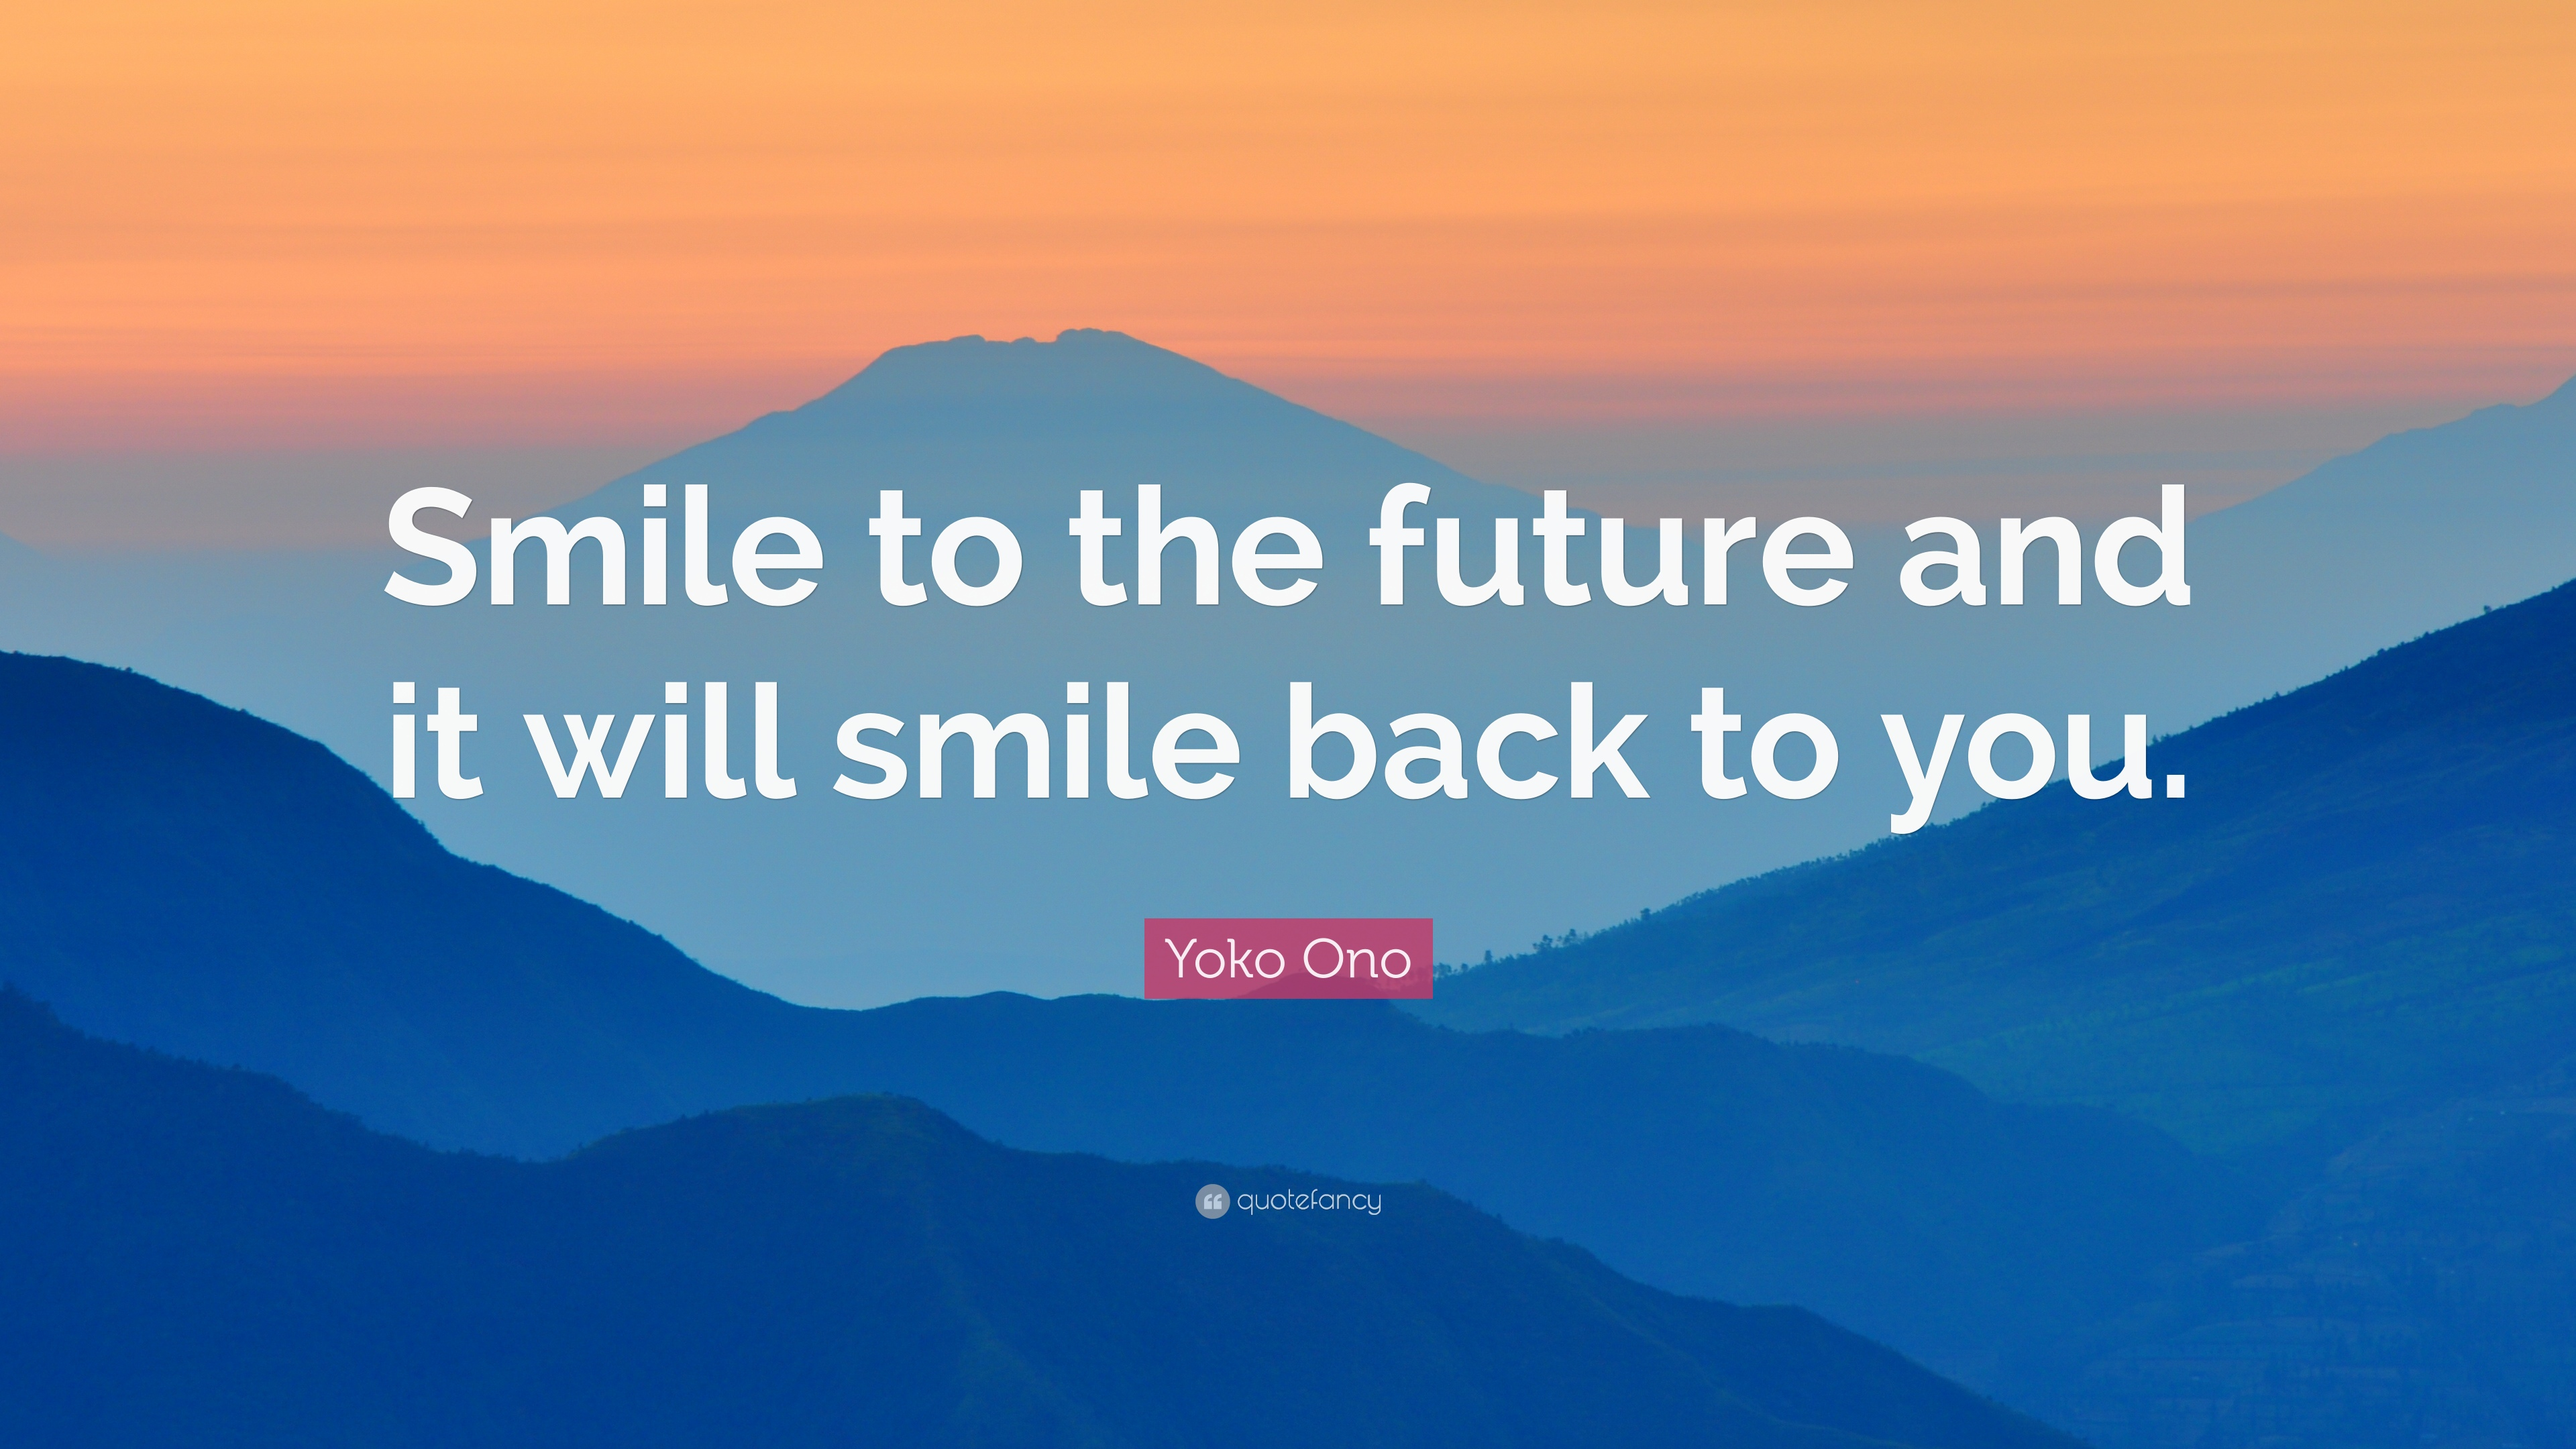 Yoko Ono Quote Smile To The Future And It Will Smile Back To You